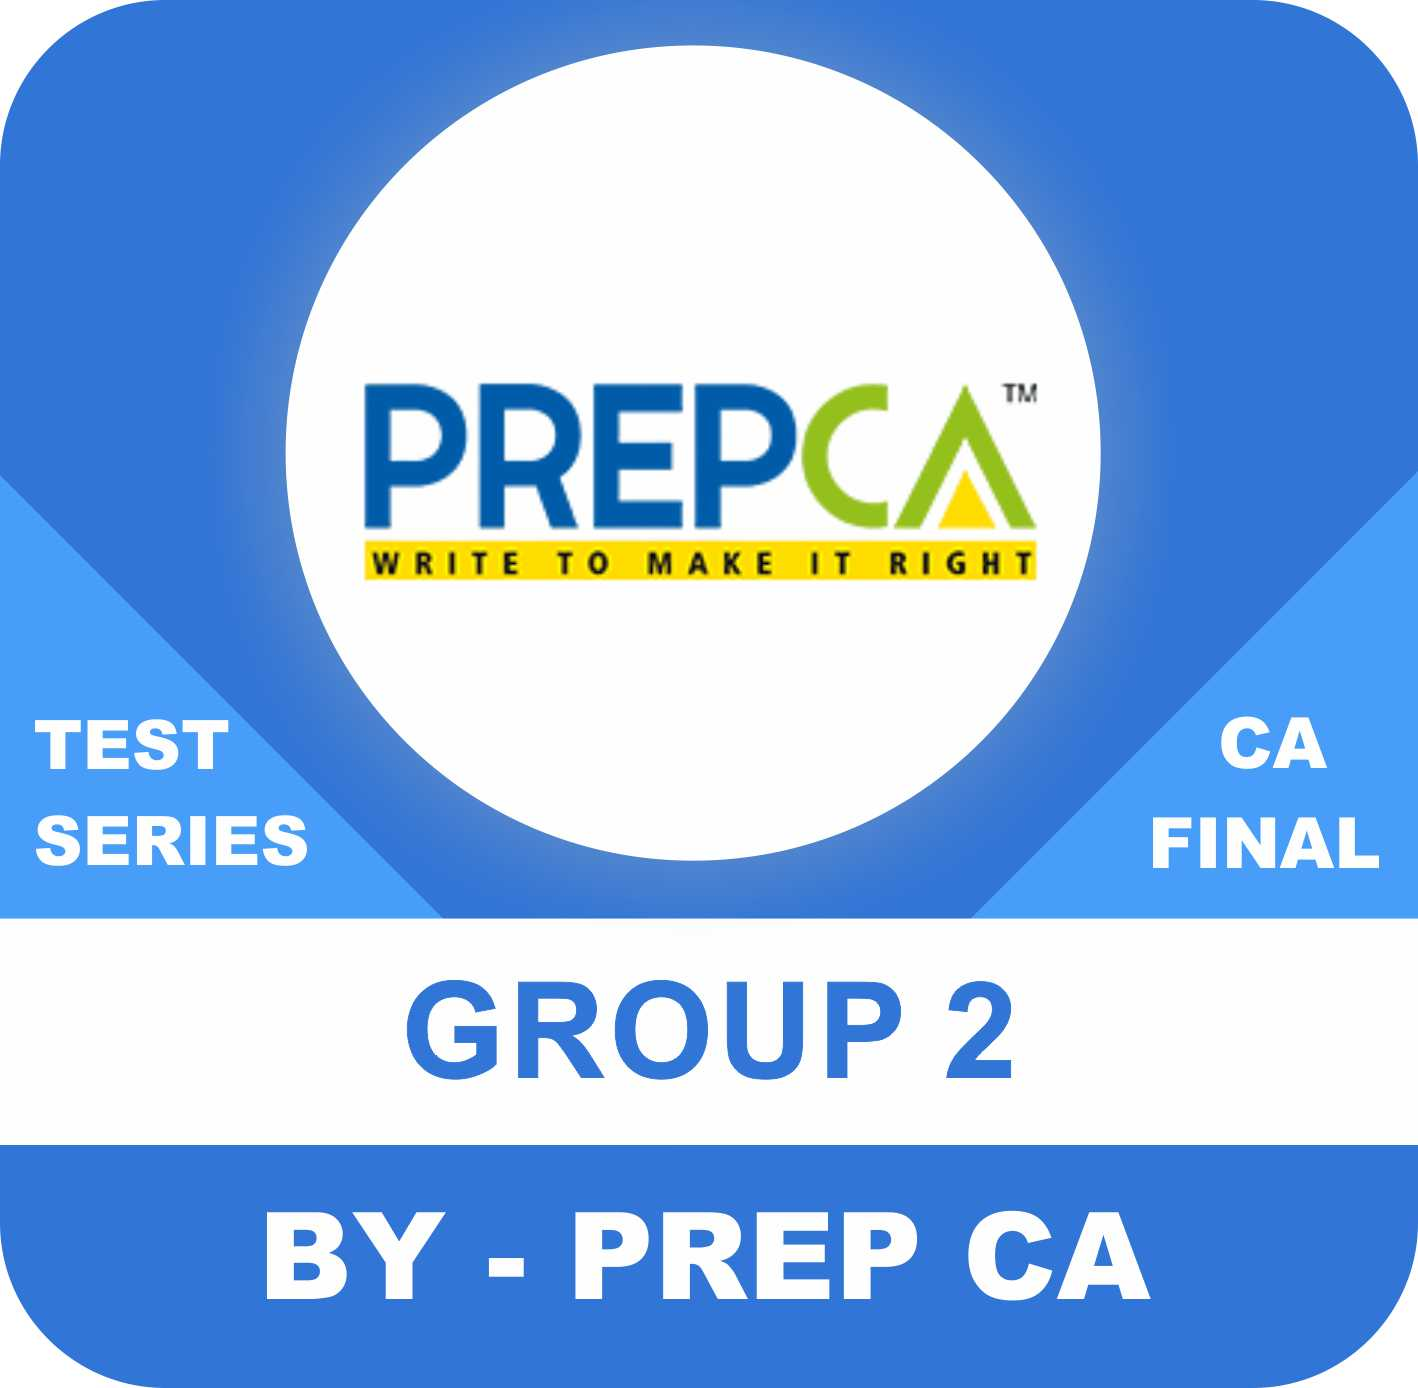 CA Final Second Group New Syllabus Test Series in Premium Program by PREPCA